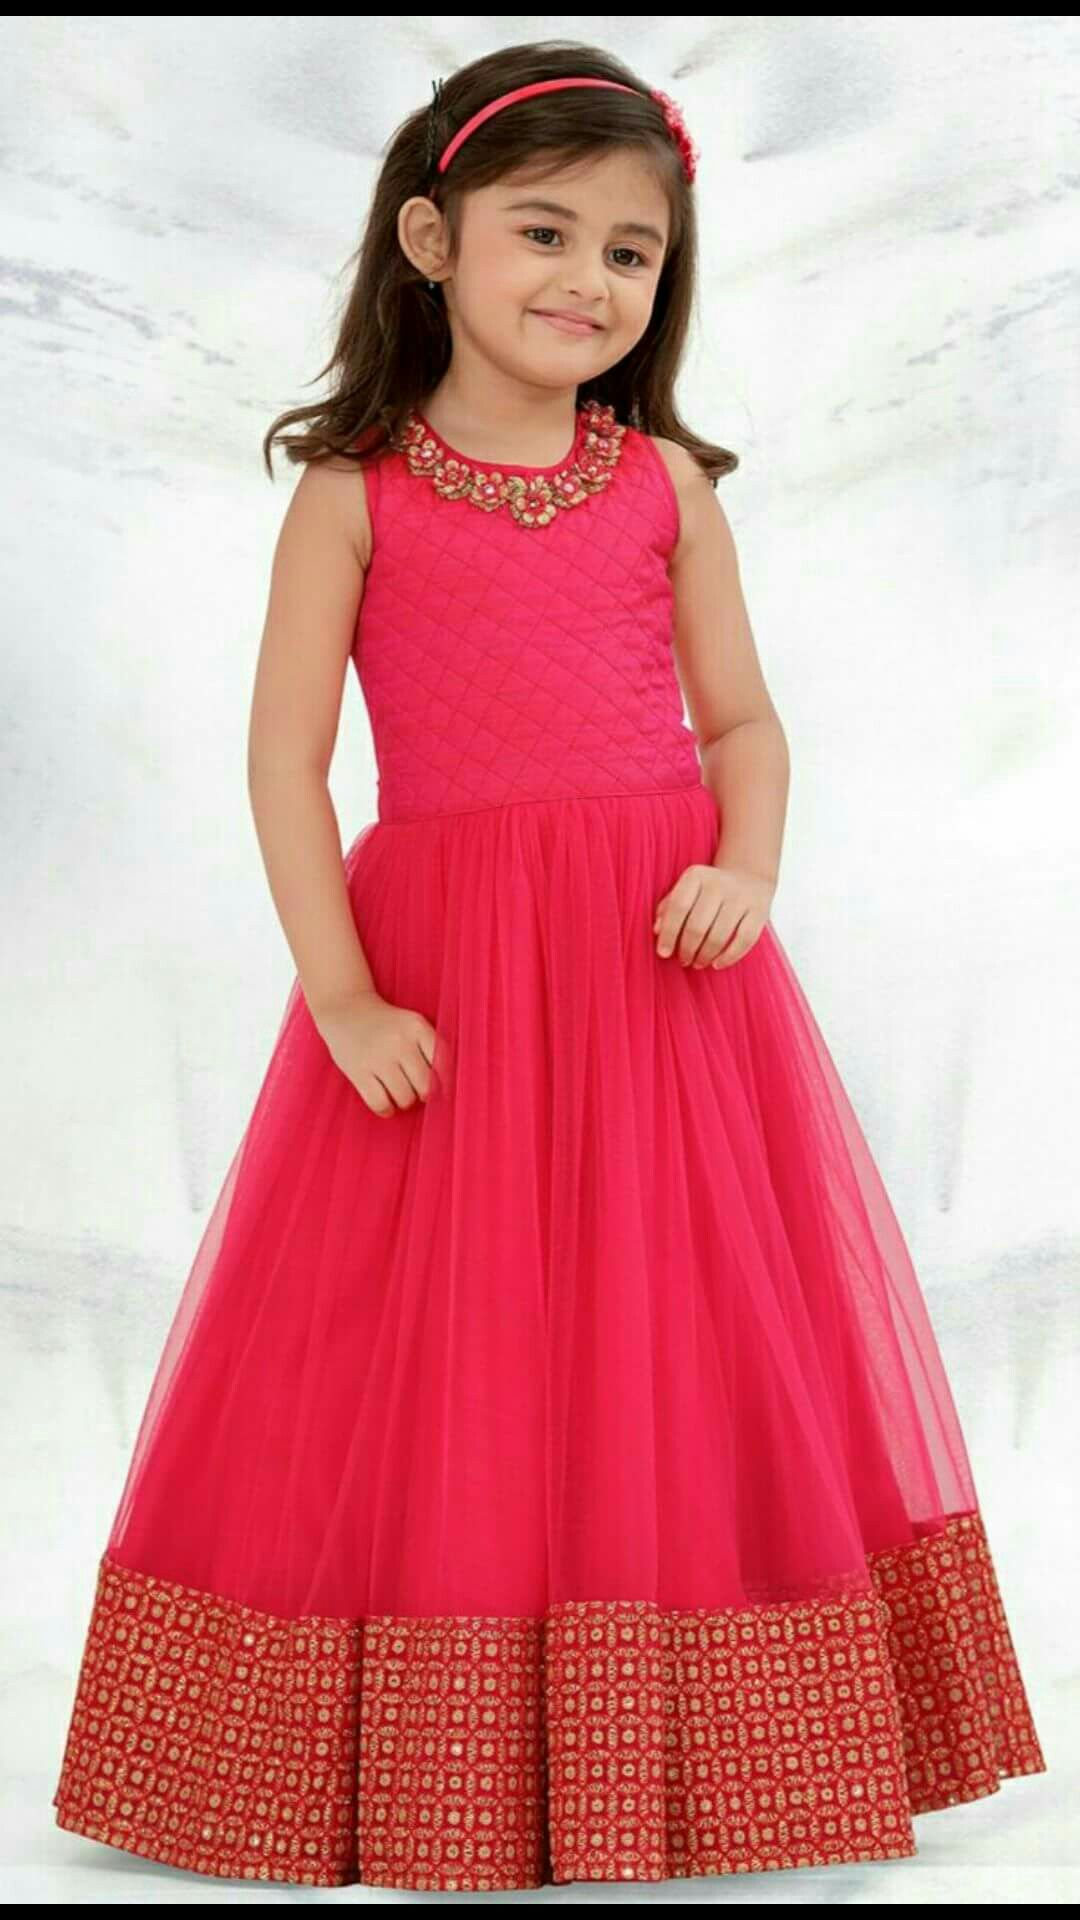 032bbf9fd Frocks | frocks in 2019 | Gowns for girls, Kids gown, Kids frocks